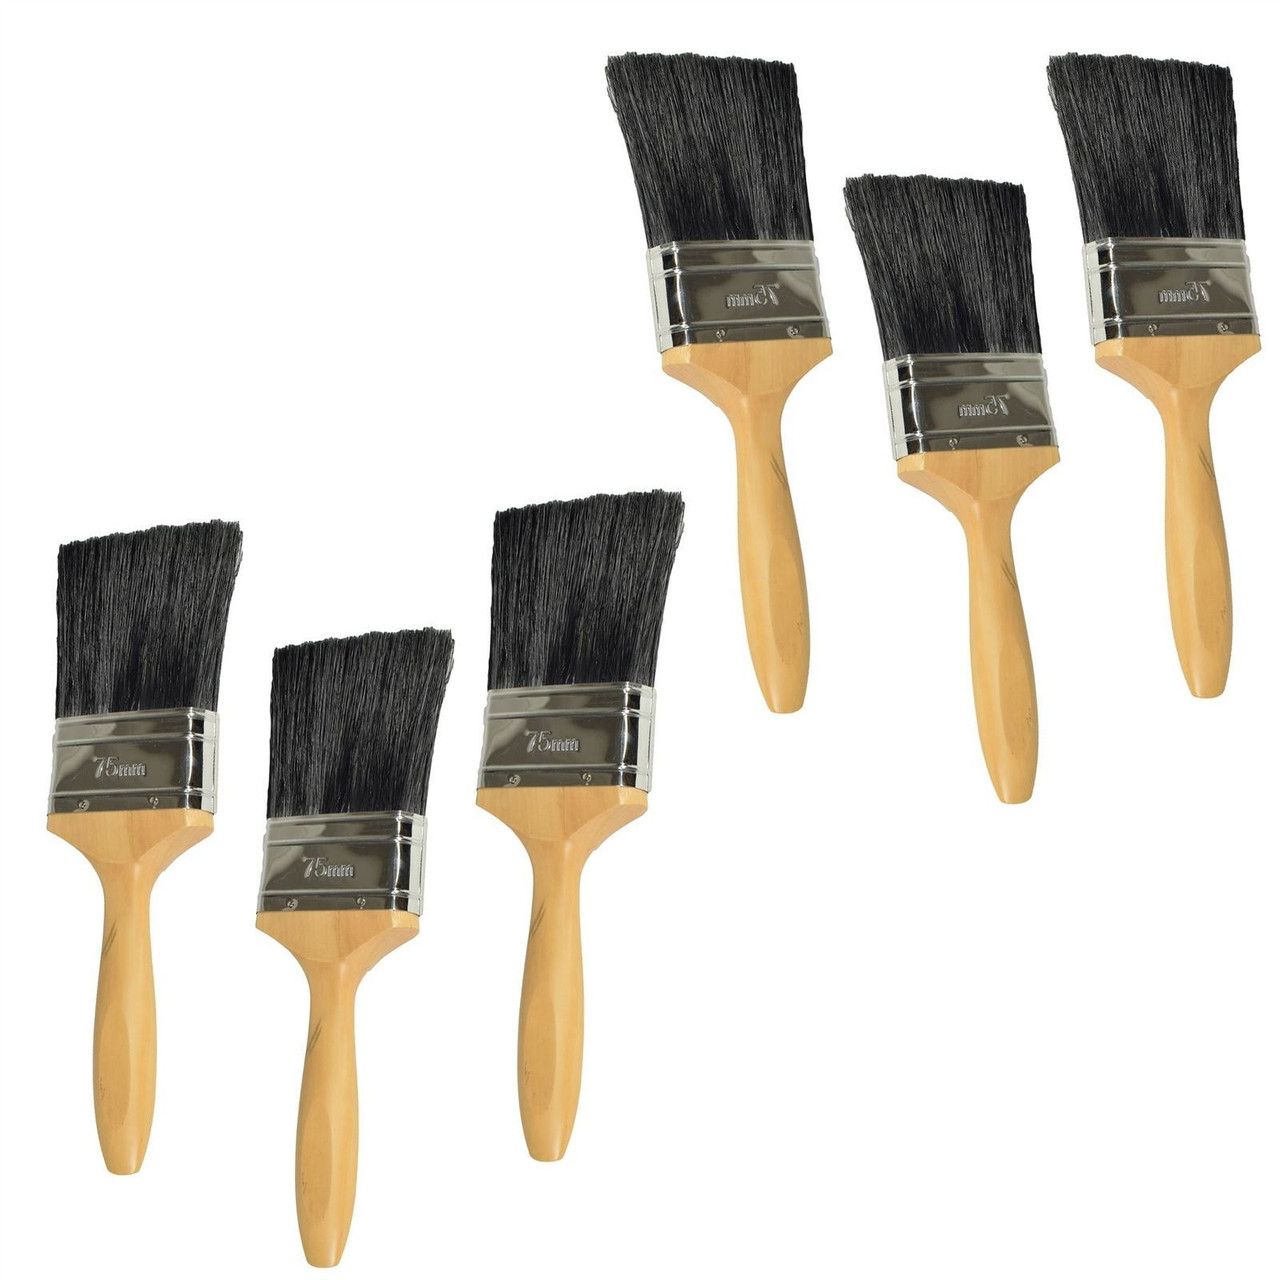 3 x 50mm Painters And Decorators Decorating Paint Painting Brush Wooden Handle